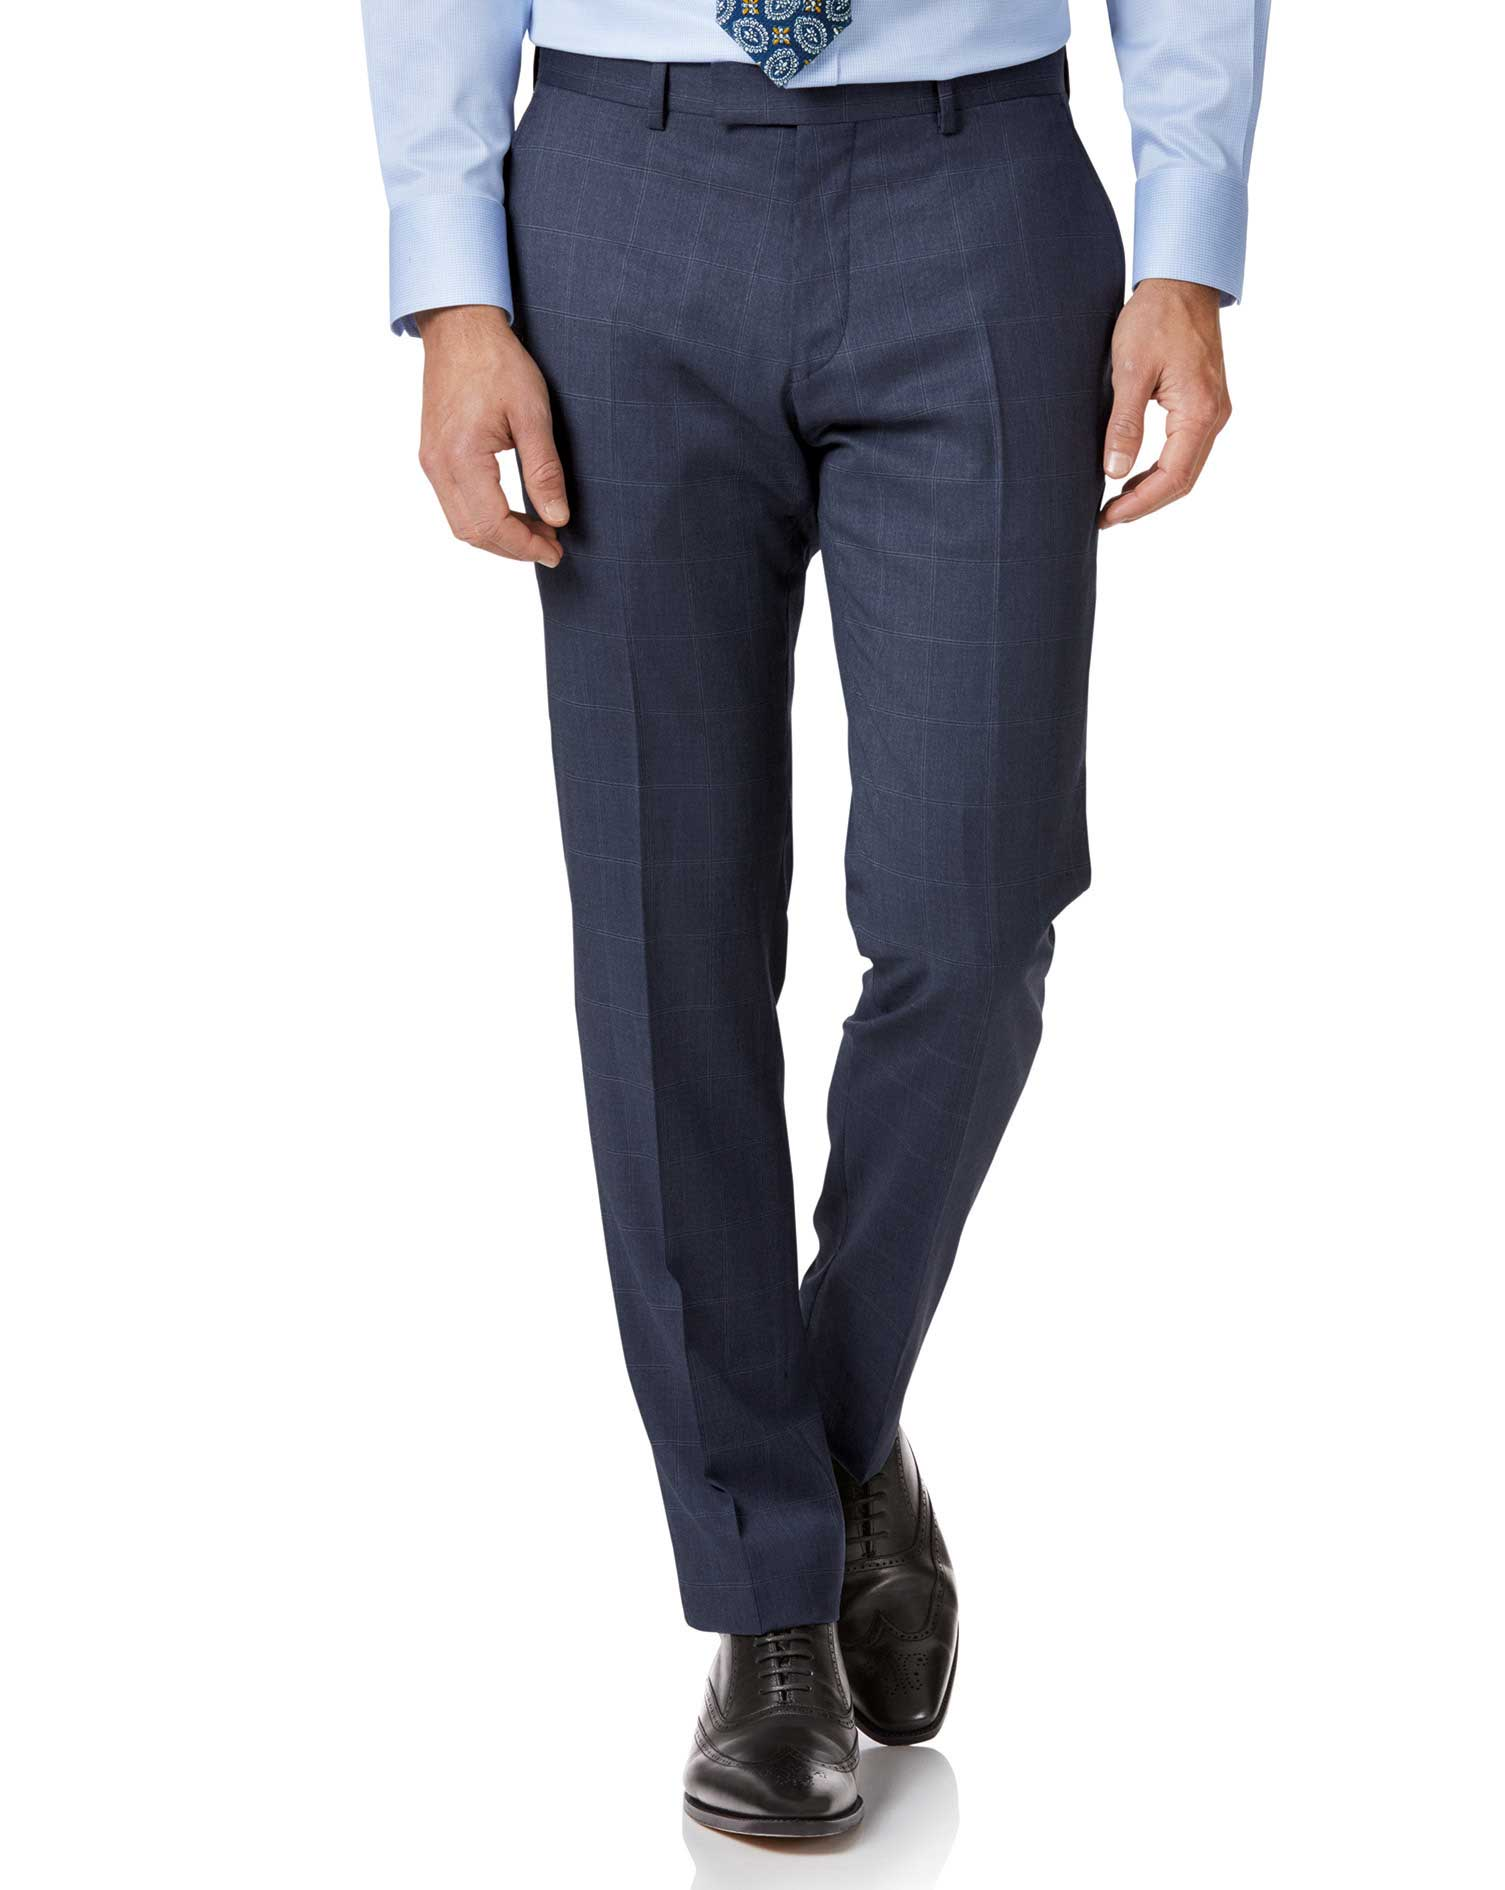 Image of Charles Tyrwhitt Airforce Blue Slim Fit Italian Suit Trousers Size W97 L81 by Charles Tyrwhitt